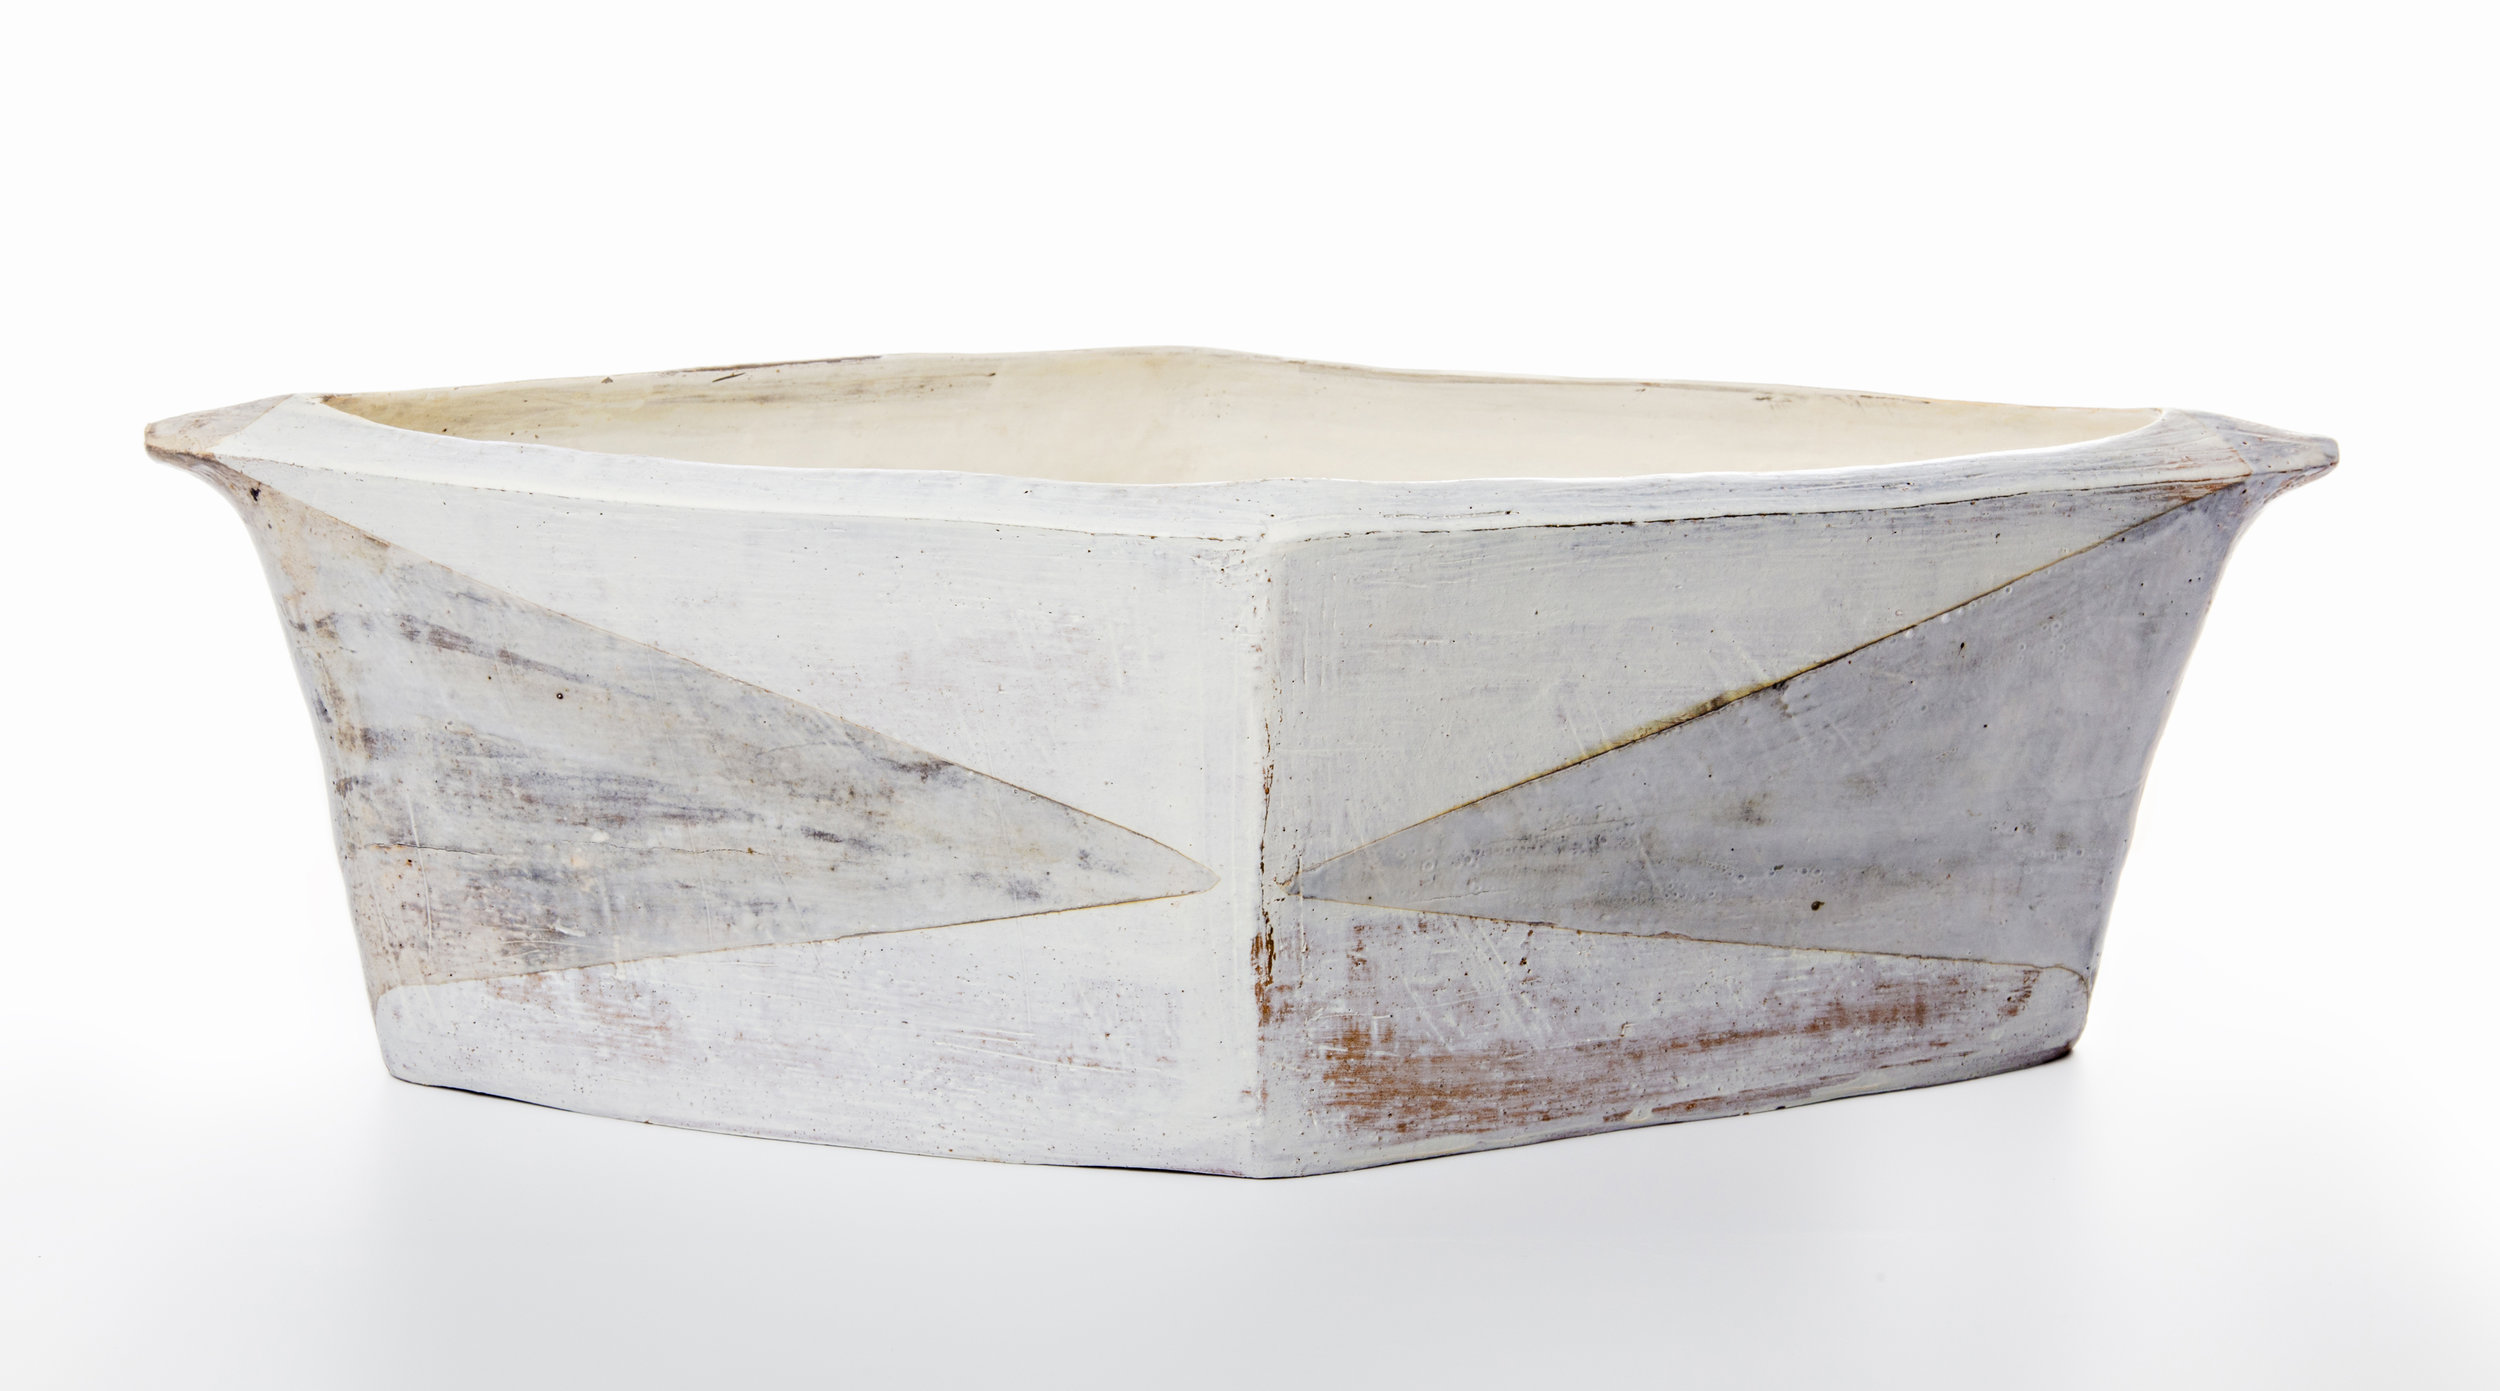 I make hand-built earthenware vessels that draw on the quiet, minimal forms of basic function, such as basins, troughs and baskets. Surfaces emphasize the subtleties of material, process and firing as the primary decorative elements – dragged grog, finger marks, the layering of slips and terra sigillata, and the dulled whites and blacks that come from reduction firing at a low temperature.  Smaller pieces like plates, cups, mugs and bowls are wheel-thrown, then scraped and pared down in form and reduction fired. Most recently I have been pulling from my long love of textiles to add pattern and color to this smaller work.